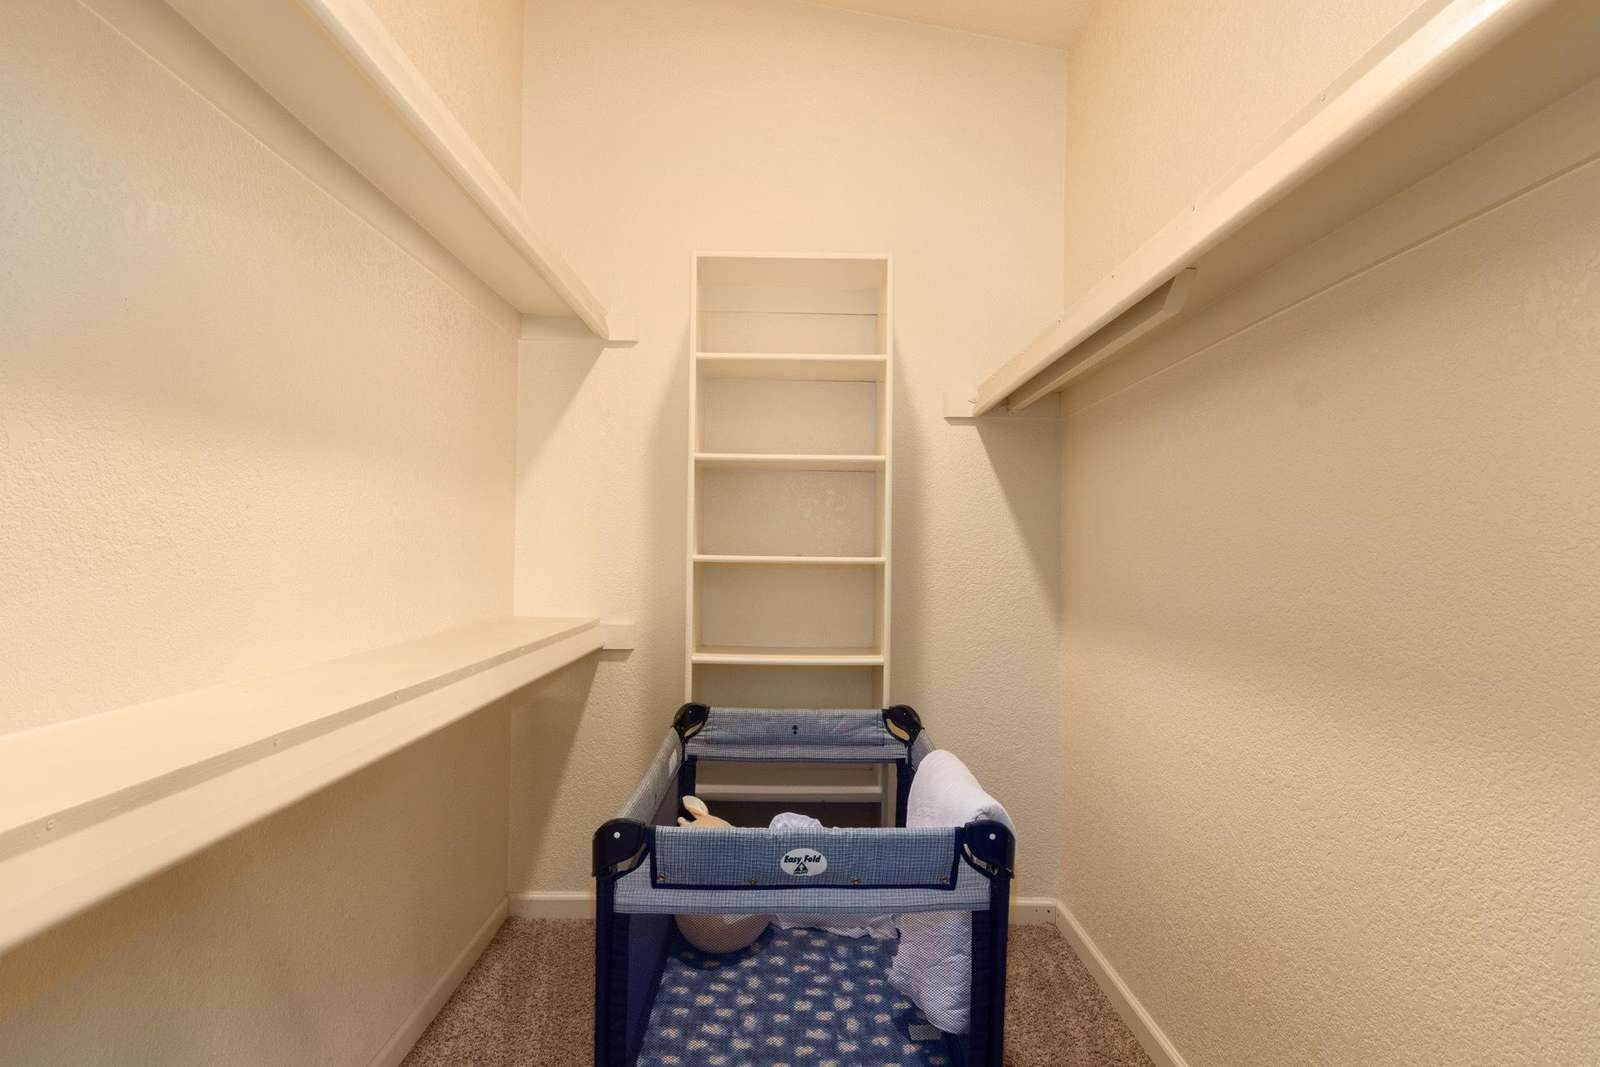 Walk In Closet With Pack & Play If Needed.